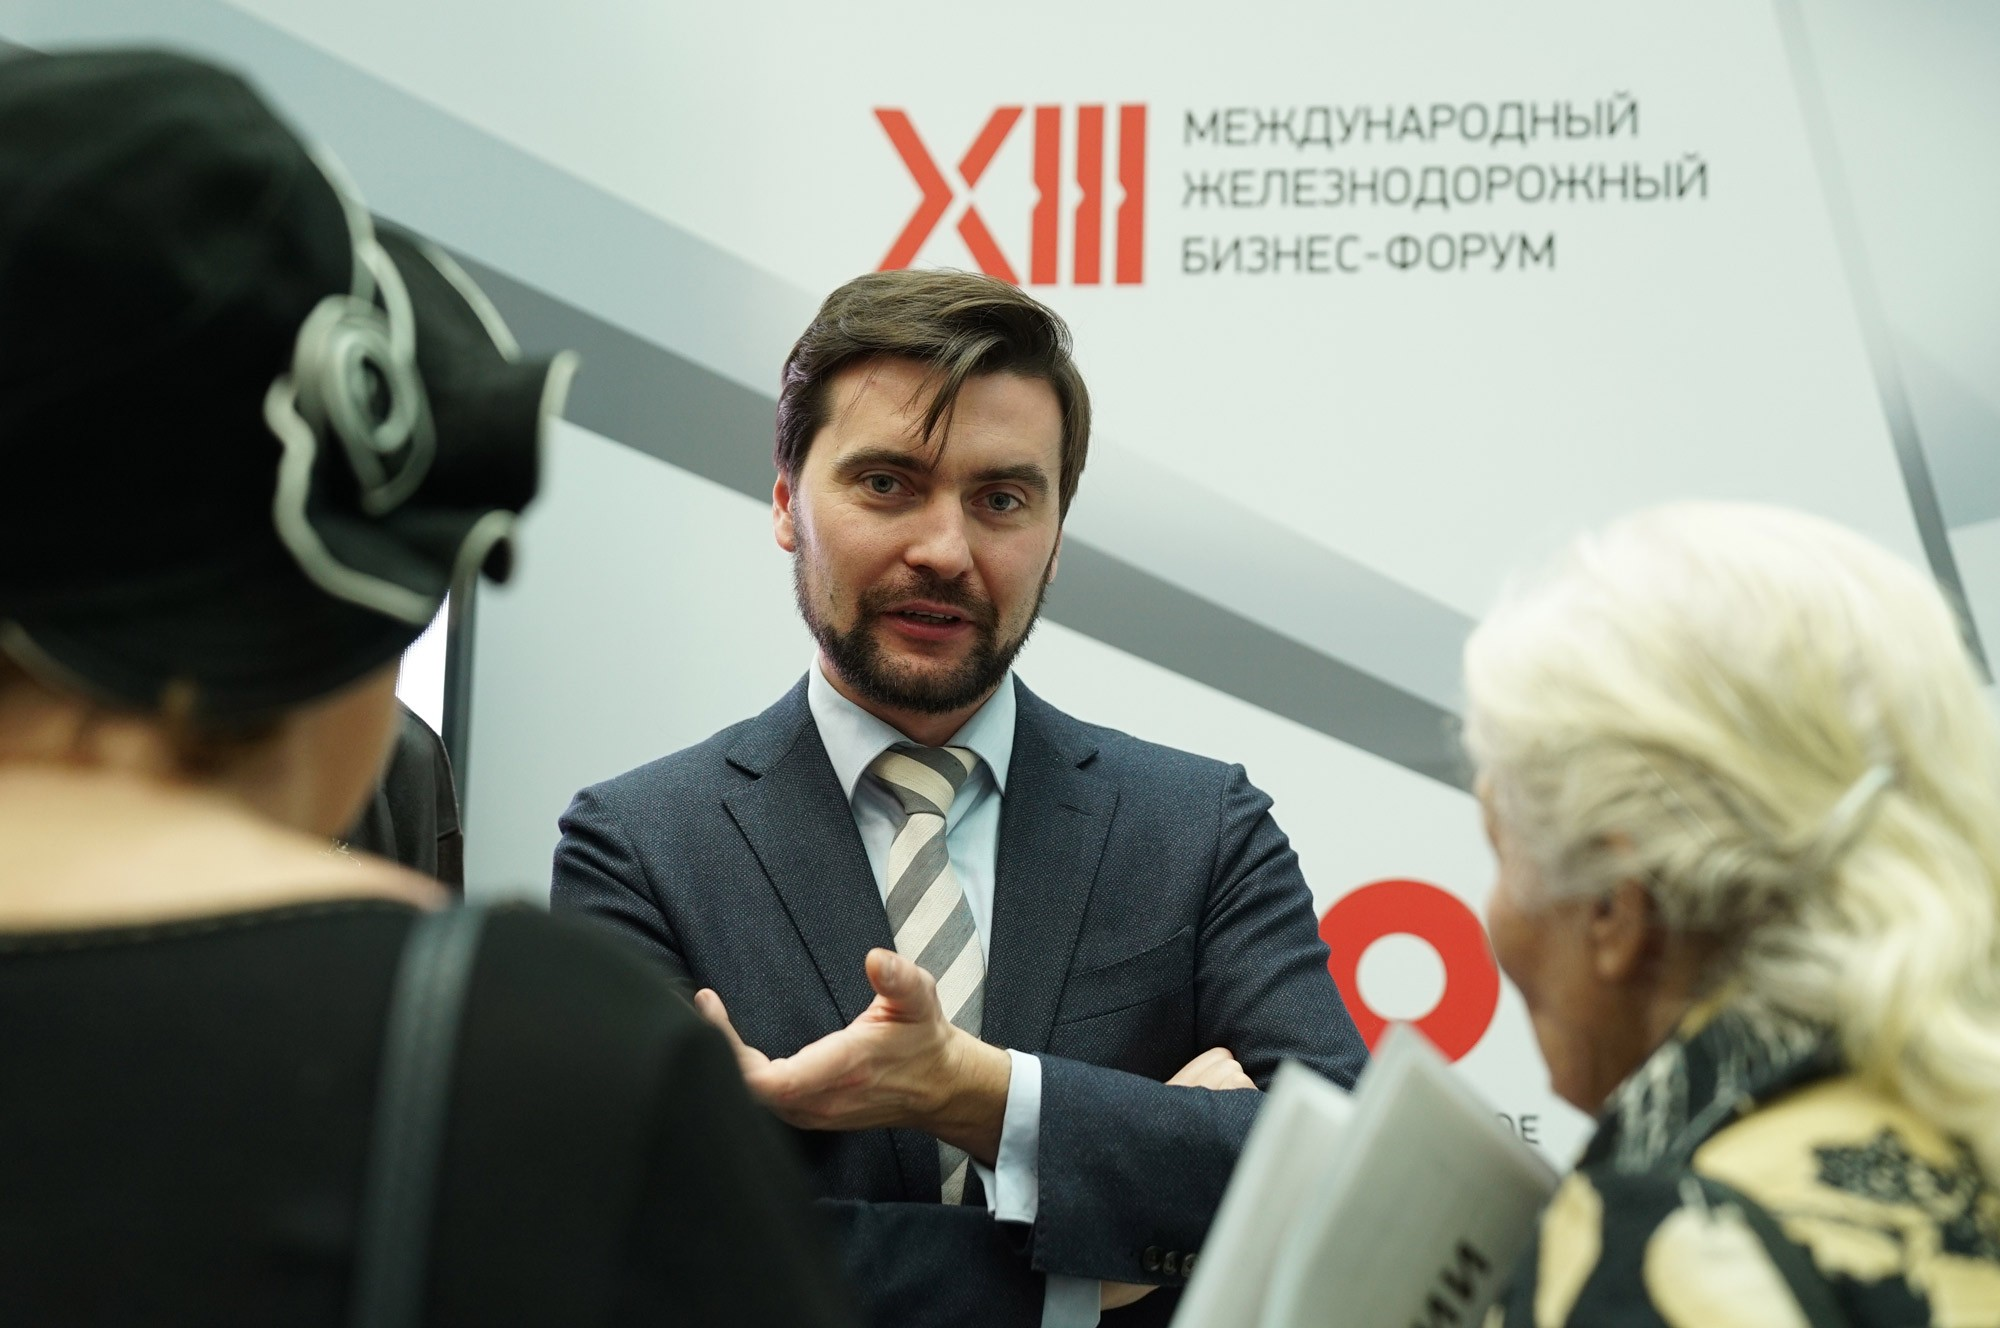 SkyWay, Sky Way, SkyWay in Belarus Yunitsky, string transport, Victor Babrin, interview, exhibition, Transport of Russia, development, conference